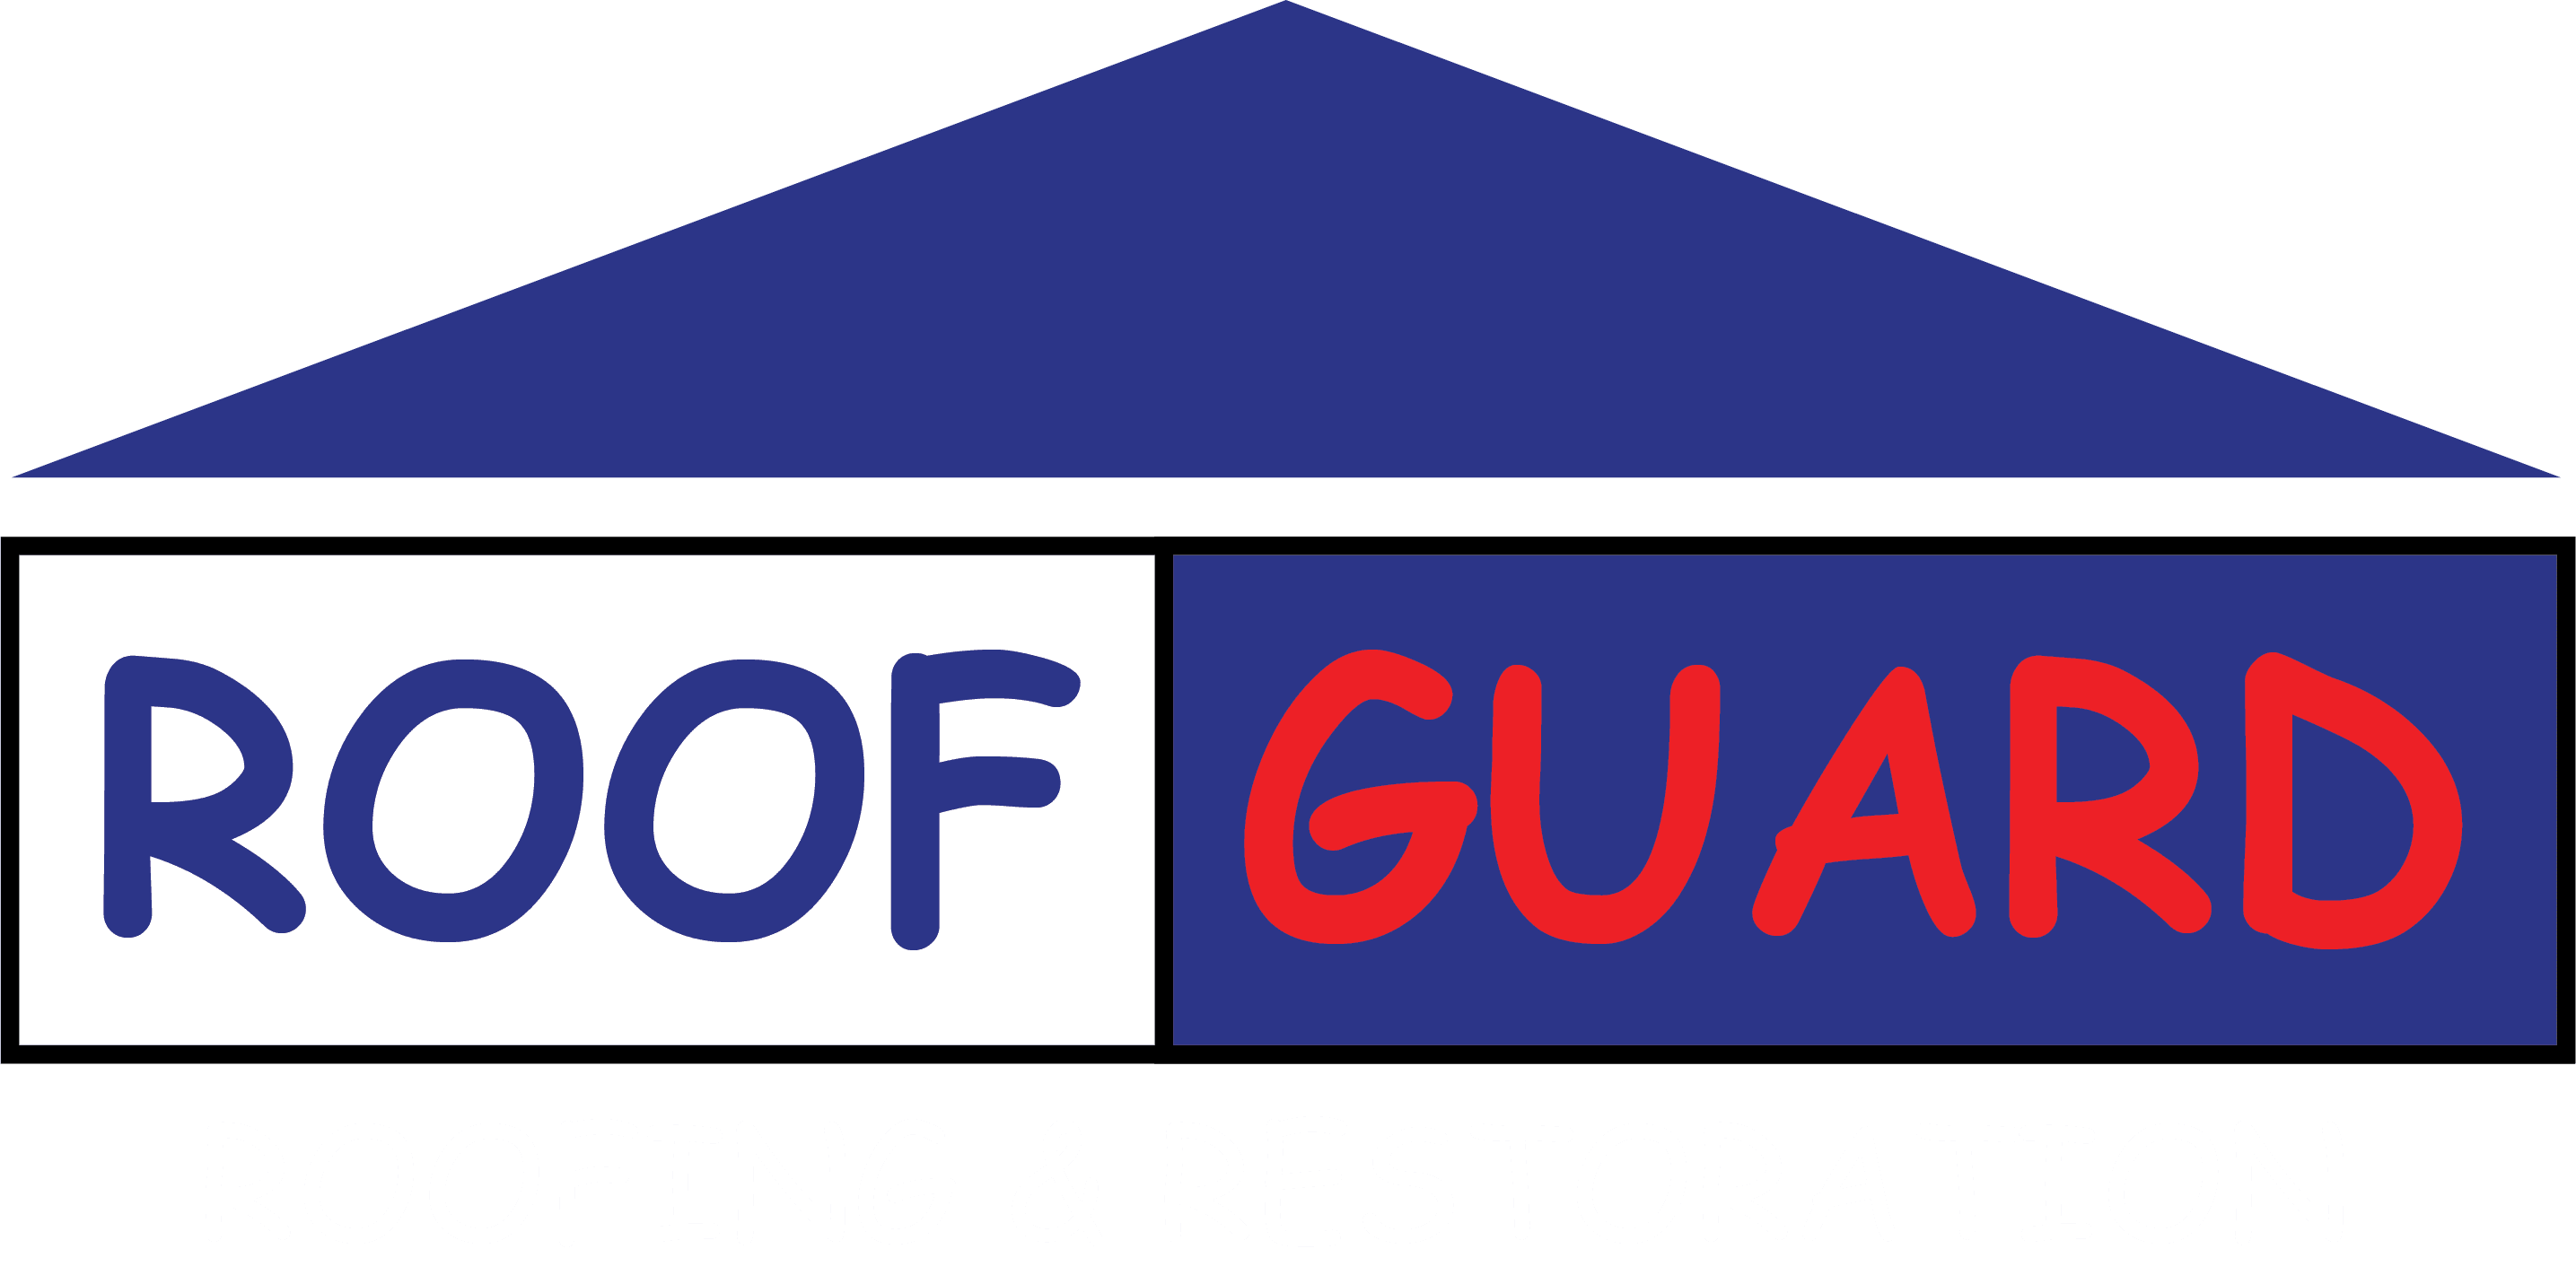 Roofing clipart roof work. A company you can